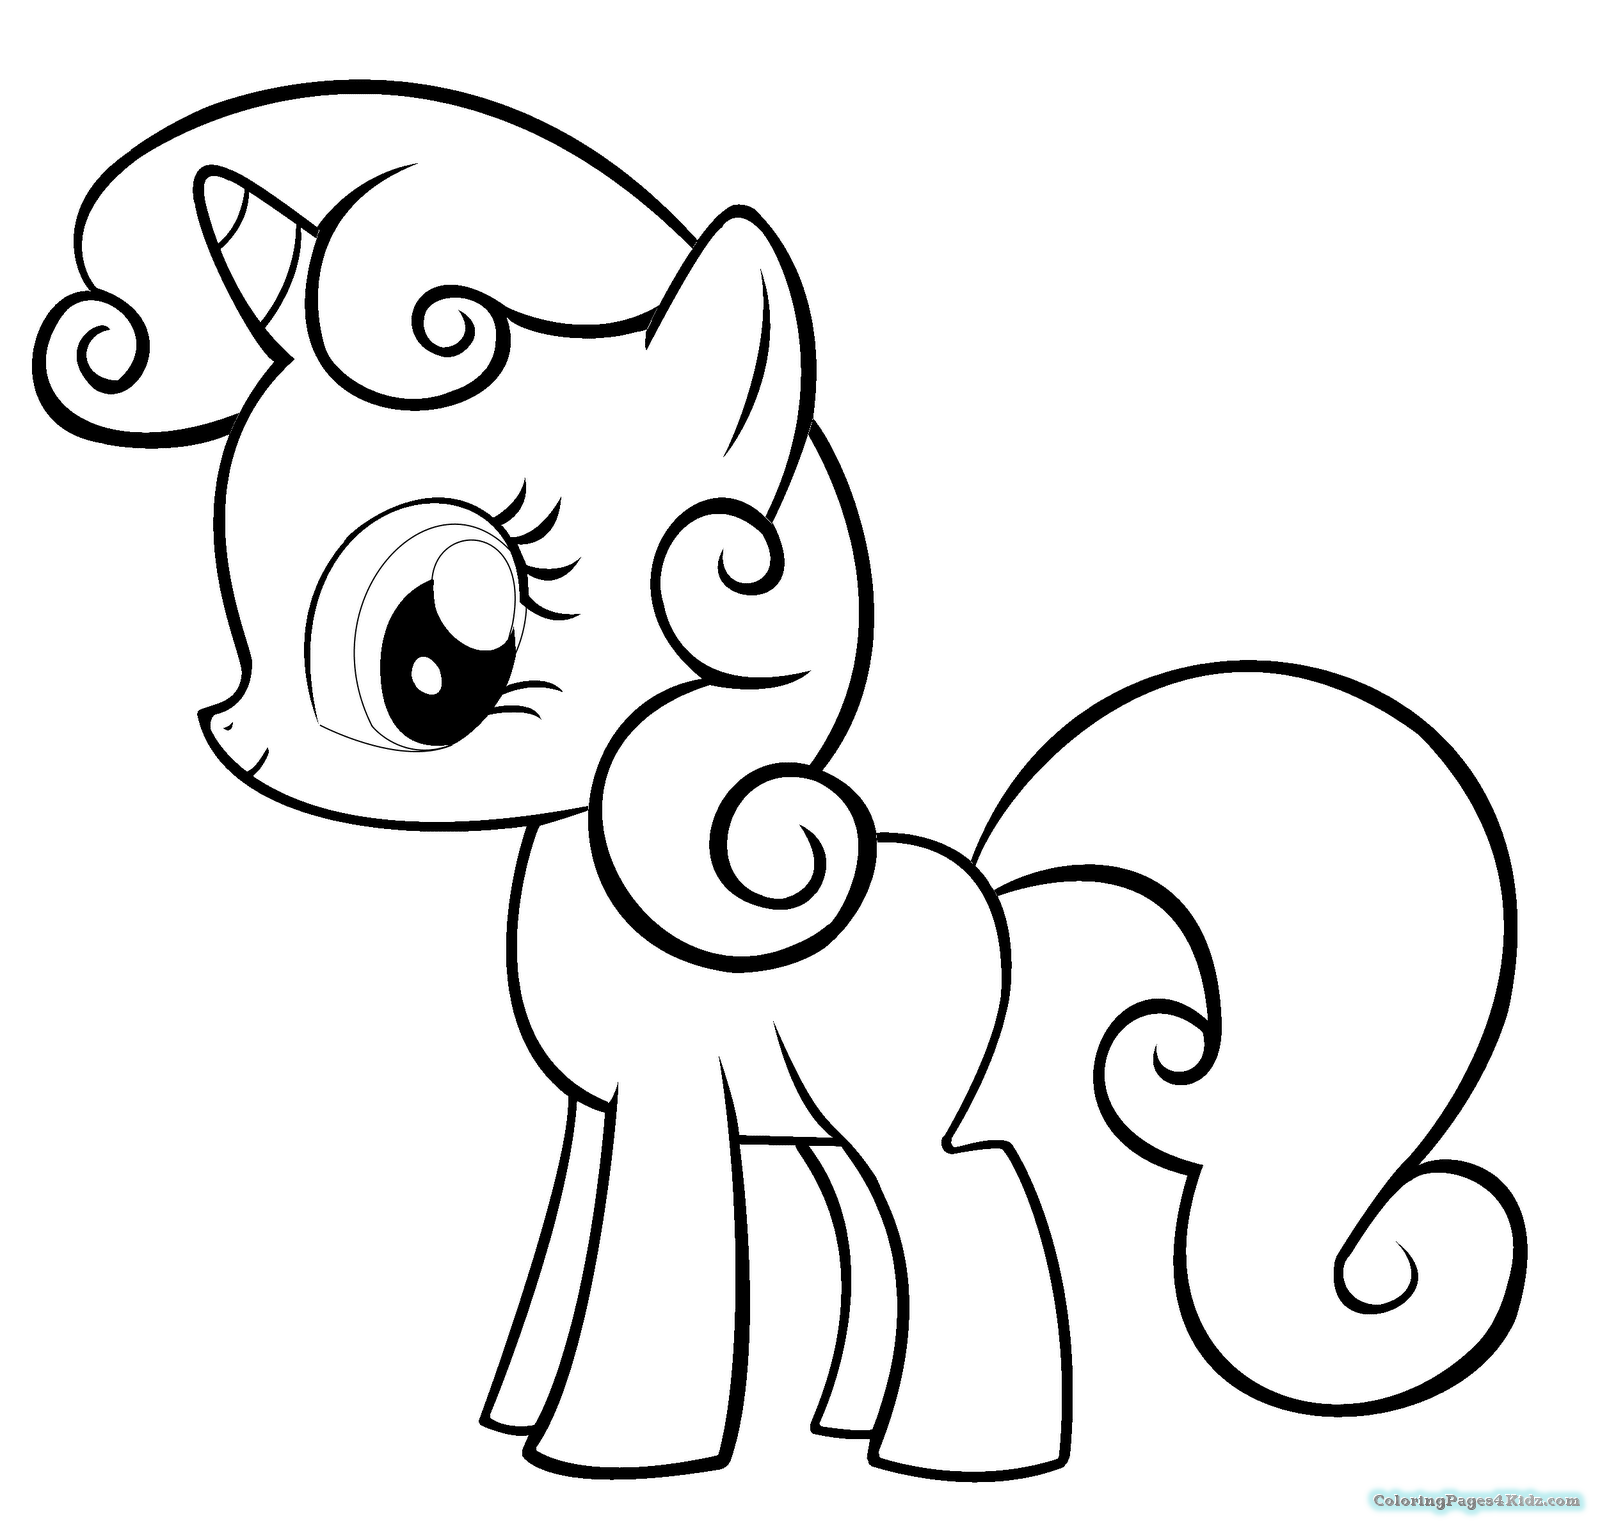 56 Apple Bloom Coloring Pages For Free